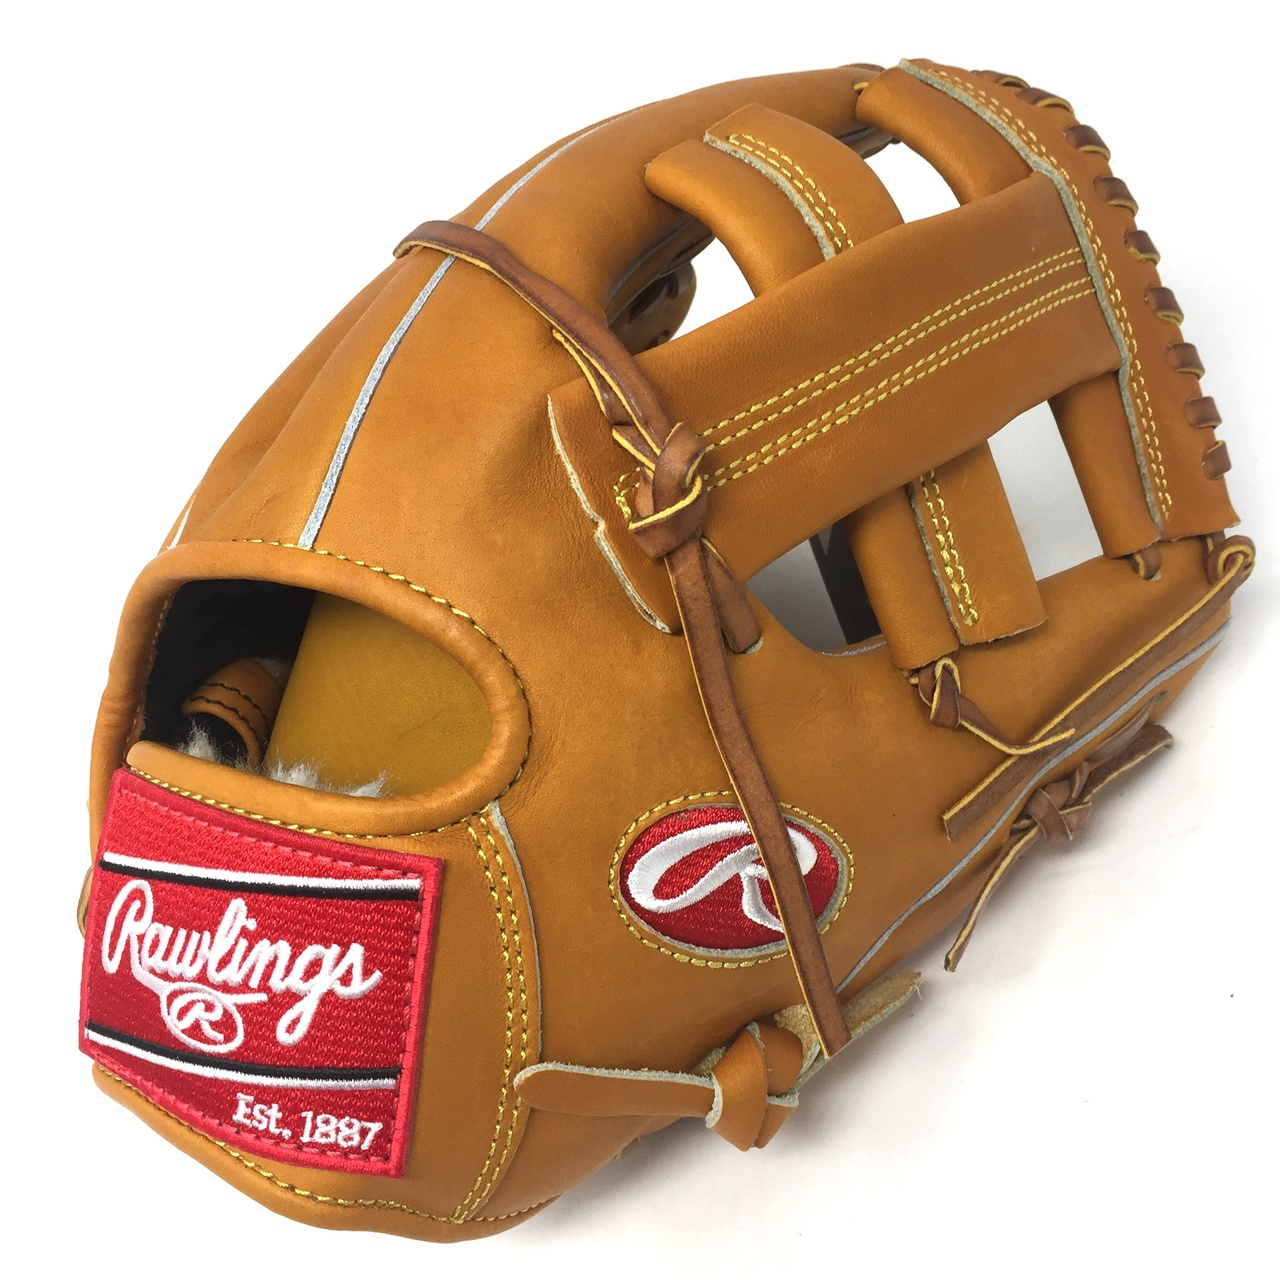 rawlings-heart-of-hide-pro200-1-11-5-inch-baseball-glove-right-hand-throw PRO200-1-RightHandThrow Rawlings 083321335303 Made with premium Japanese tanned leather this Heart of the Hide